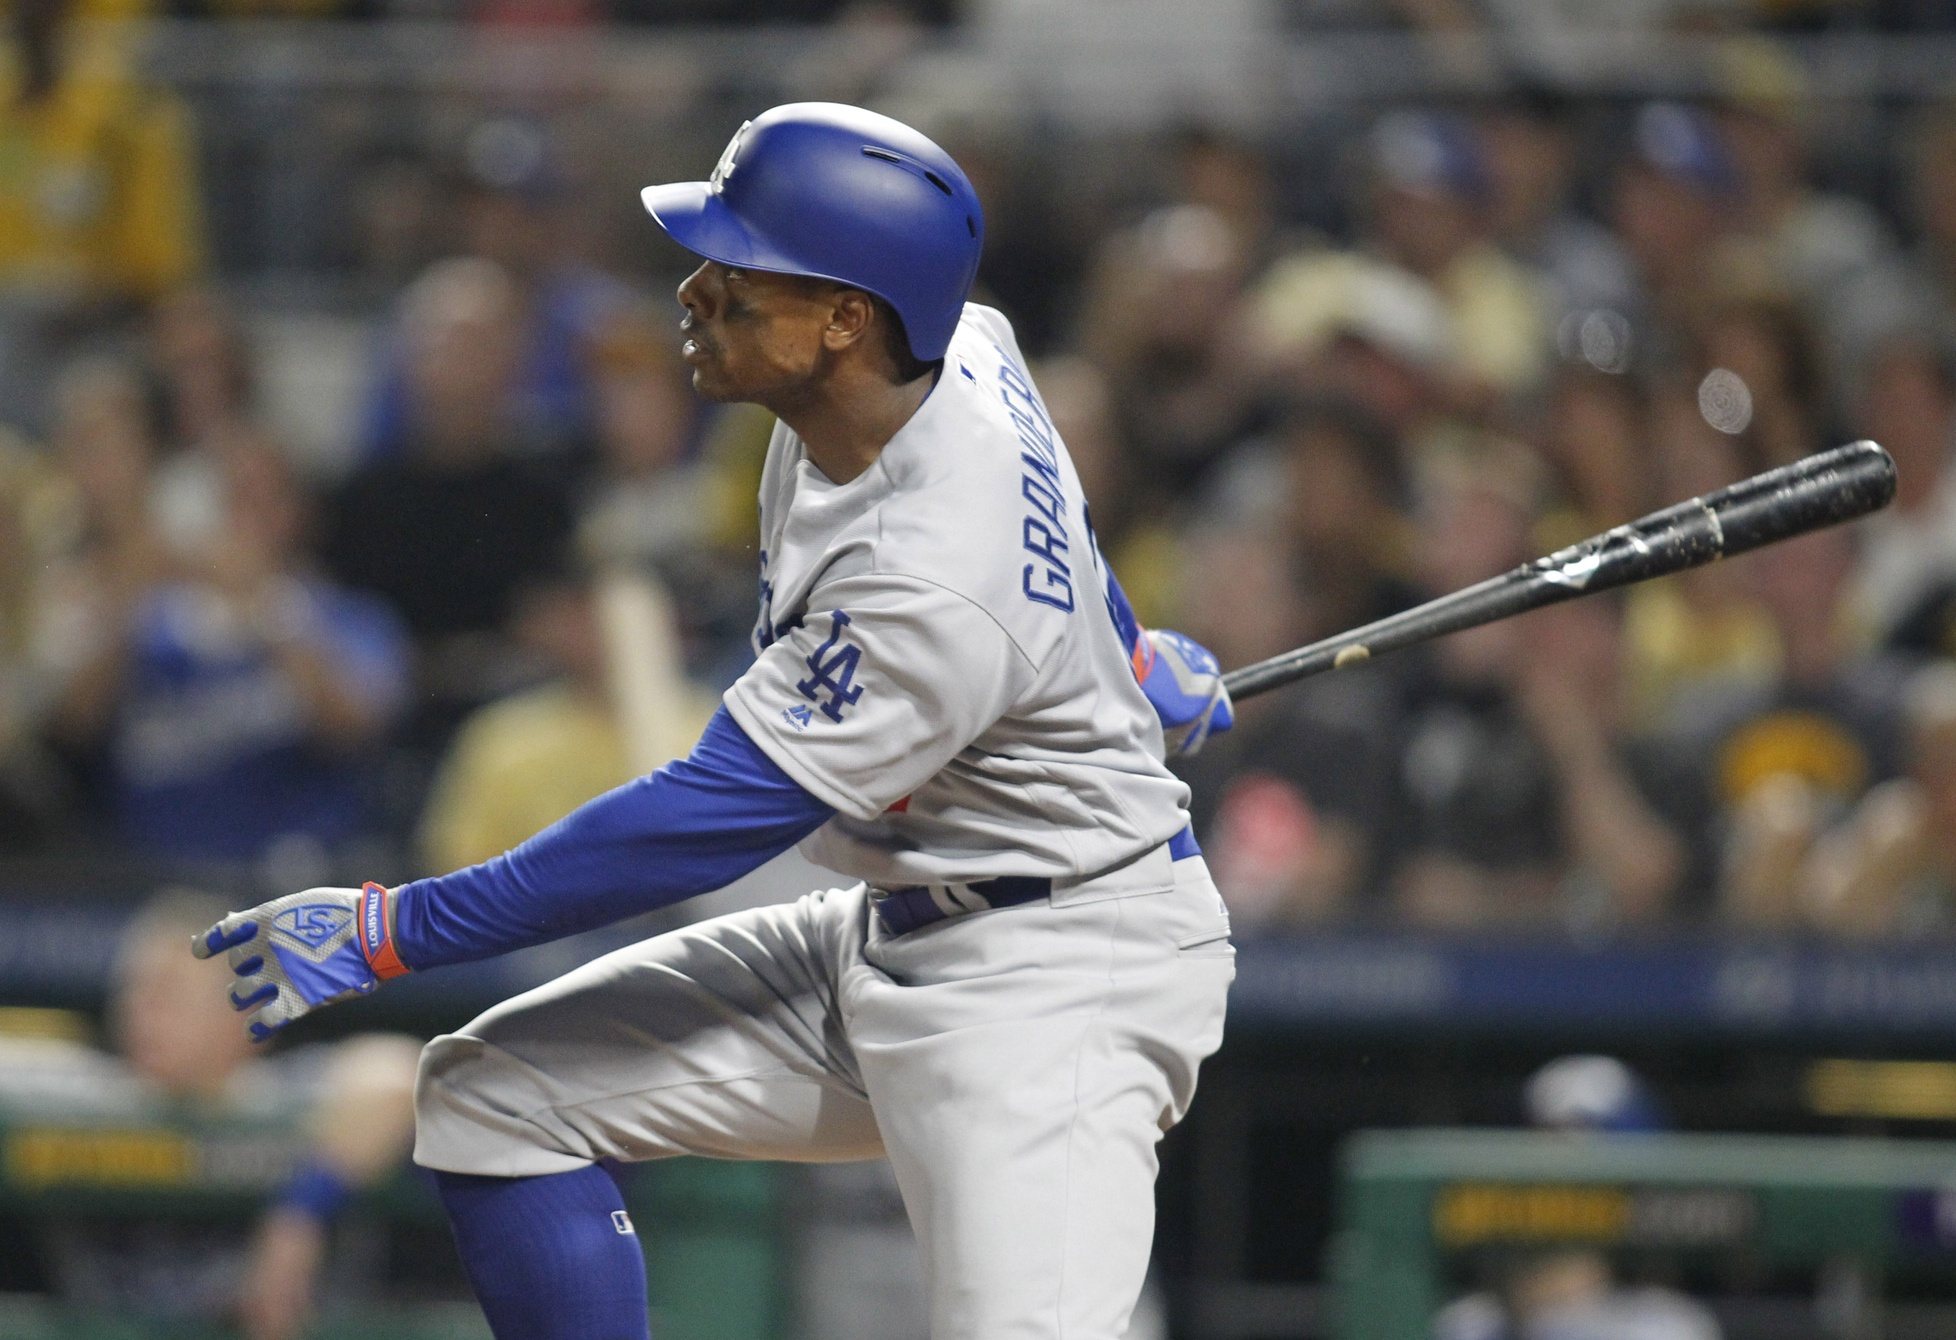 Curtis Granderson headed to Blue Jays on one-year, $5 million deal